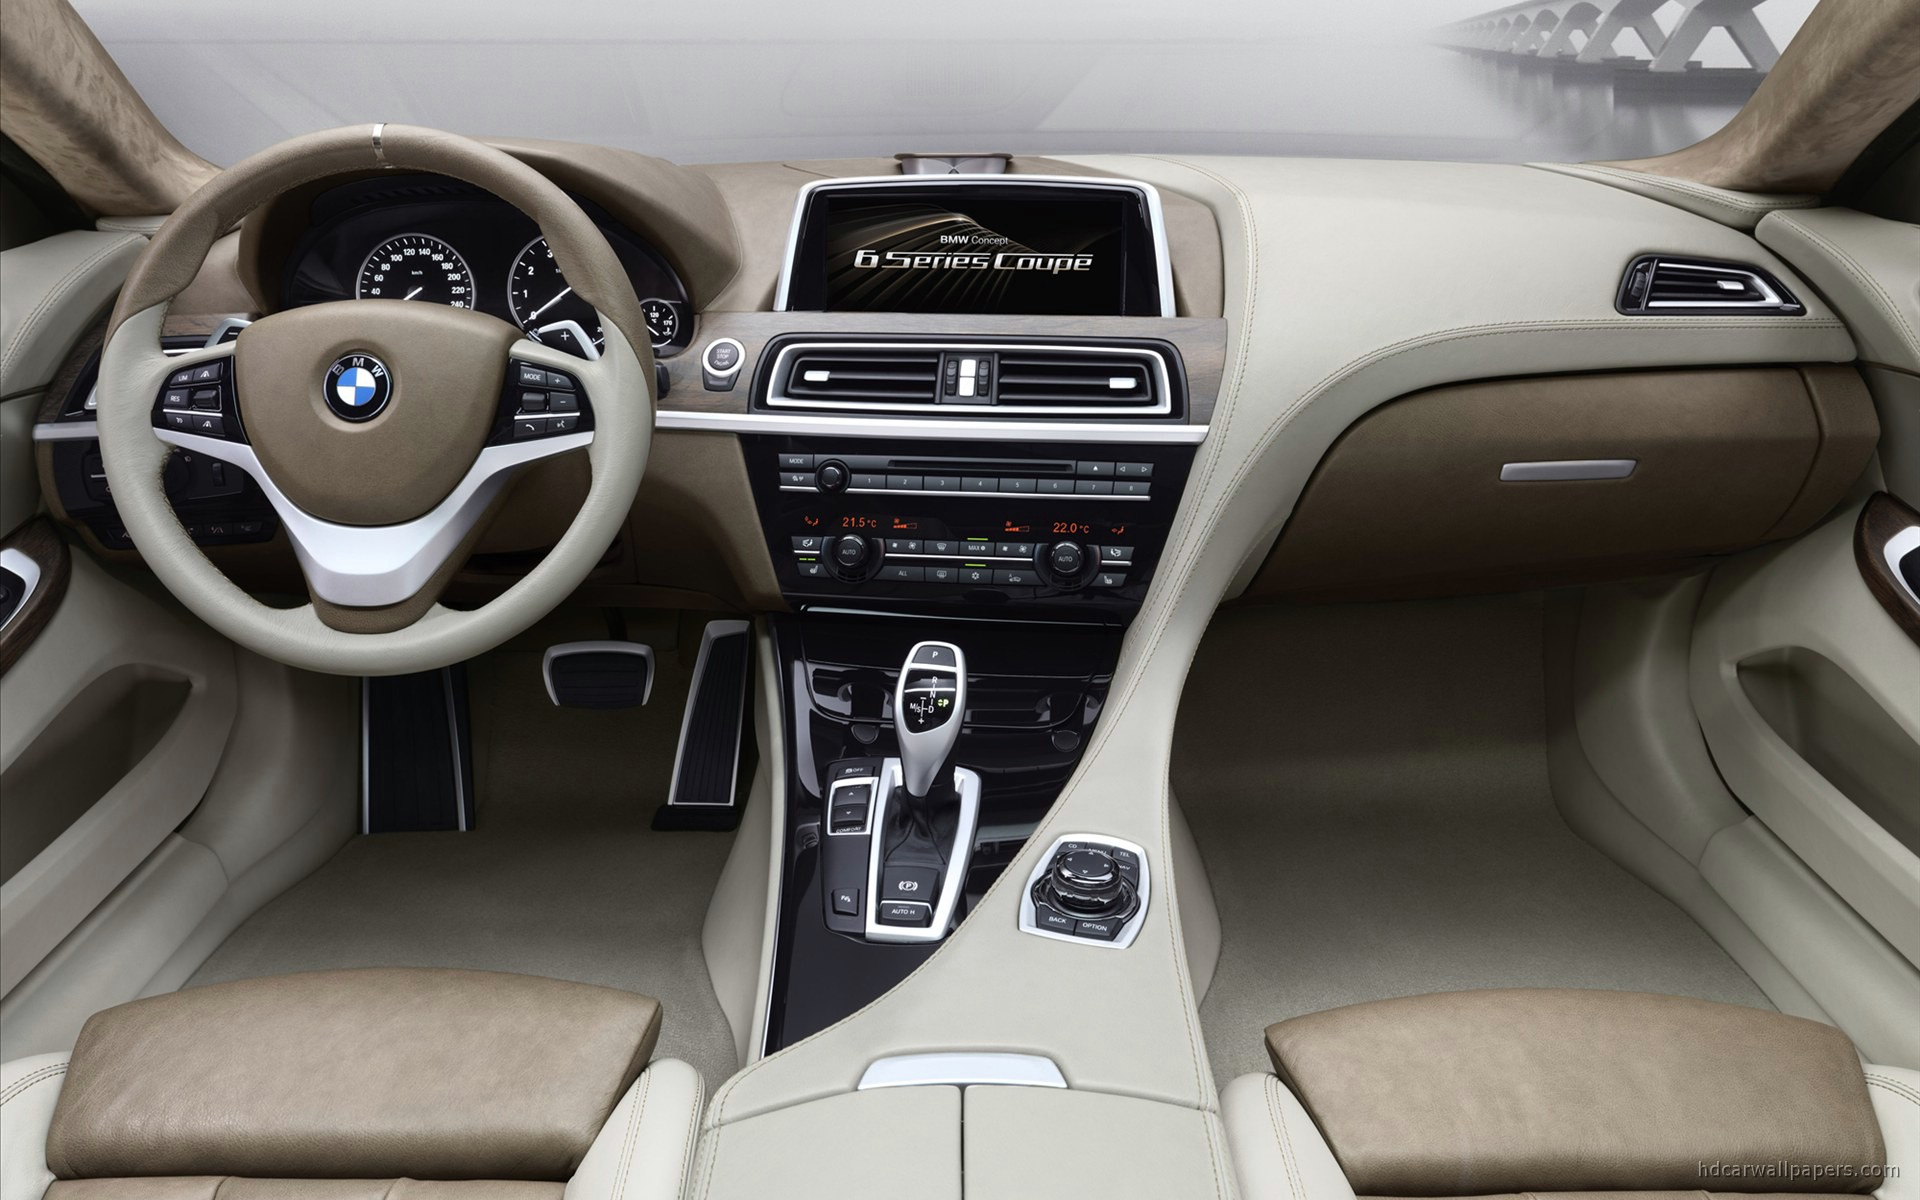 2010 Bmw 6 Series Concept Interior Wallpaper Hd Car